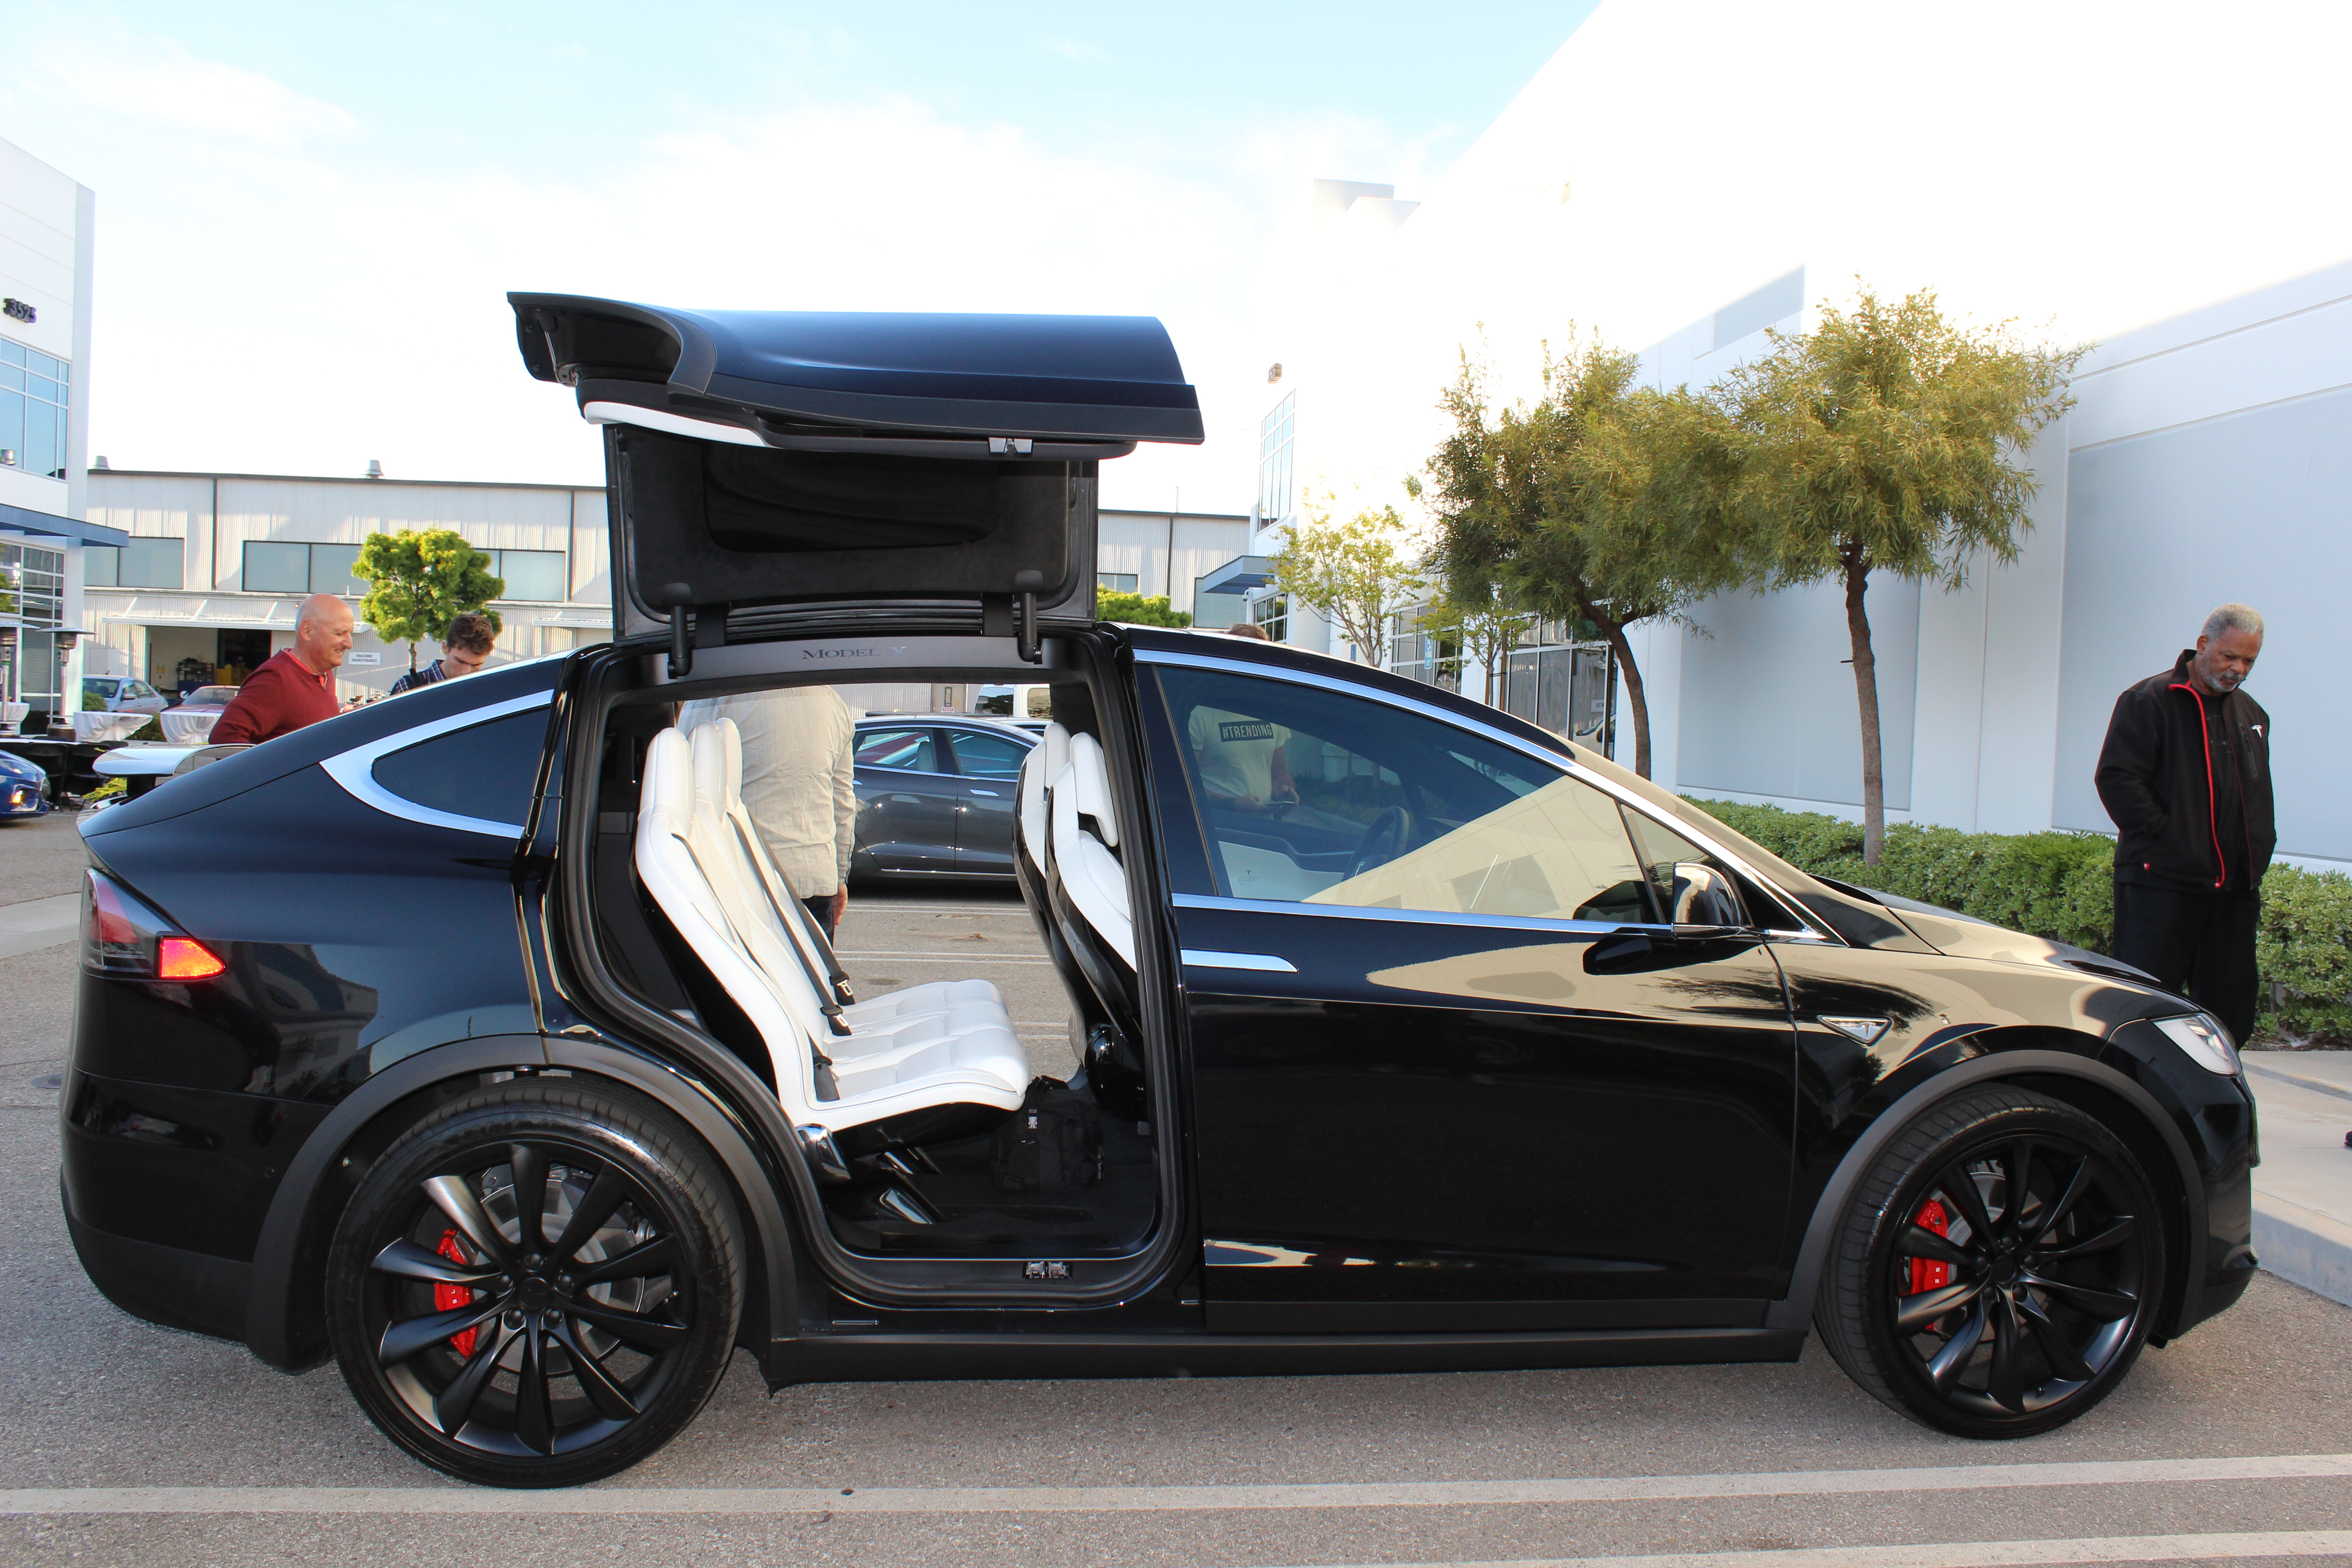 consumer reports not thrilled with tesla model x might be smoking oil crack. Black Bedroom Furniture Sets. Home Design Ideas